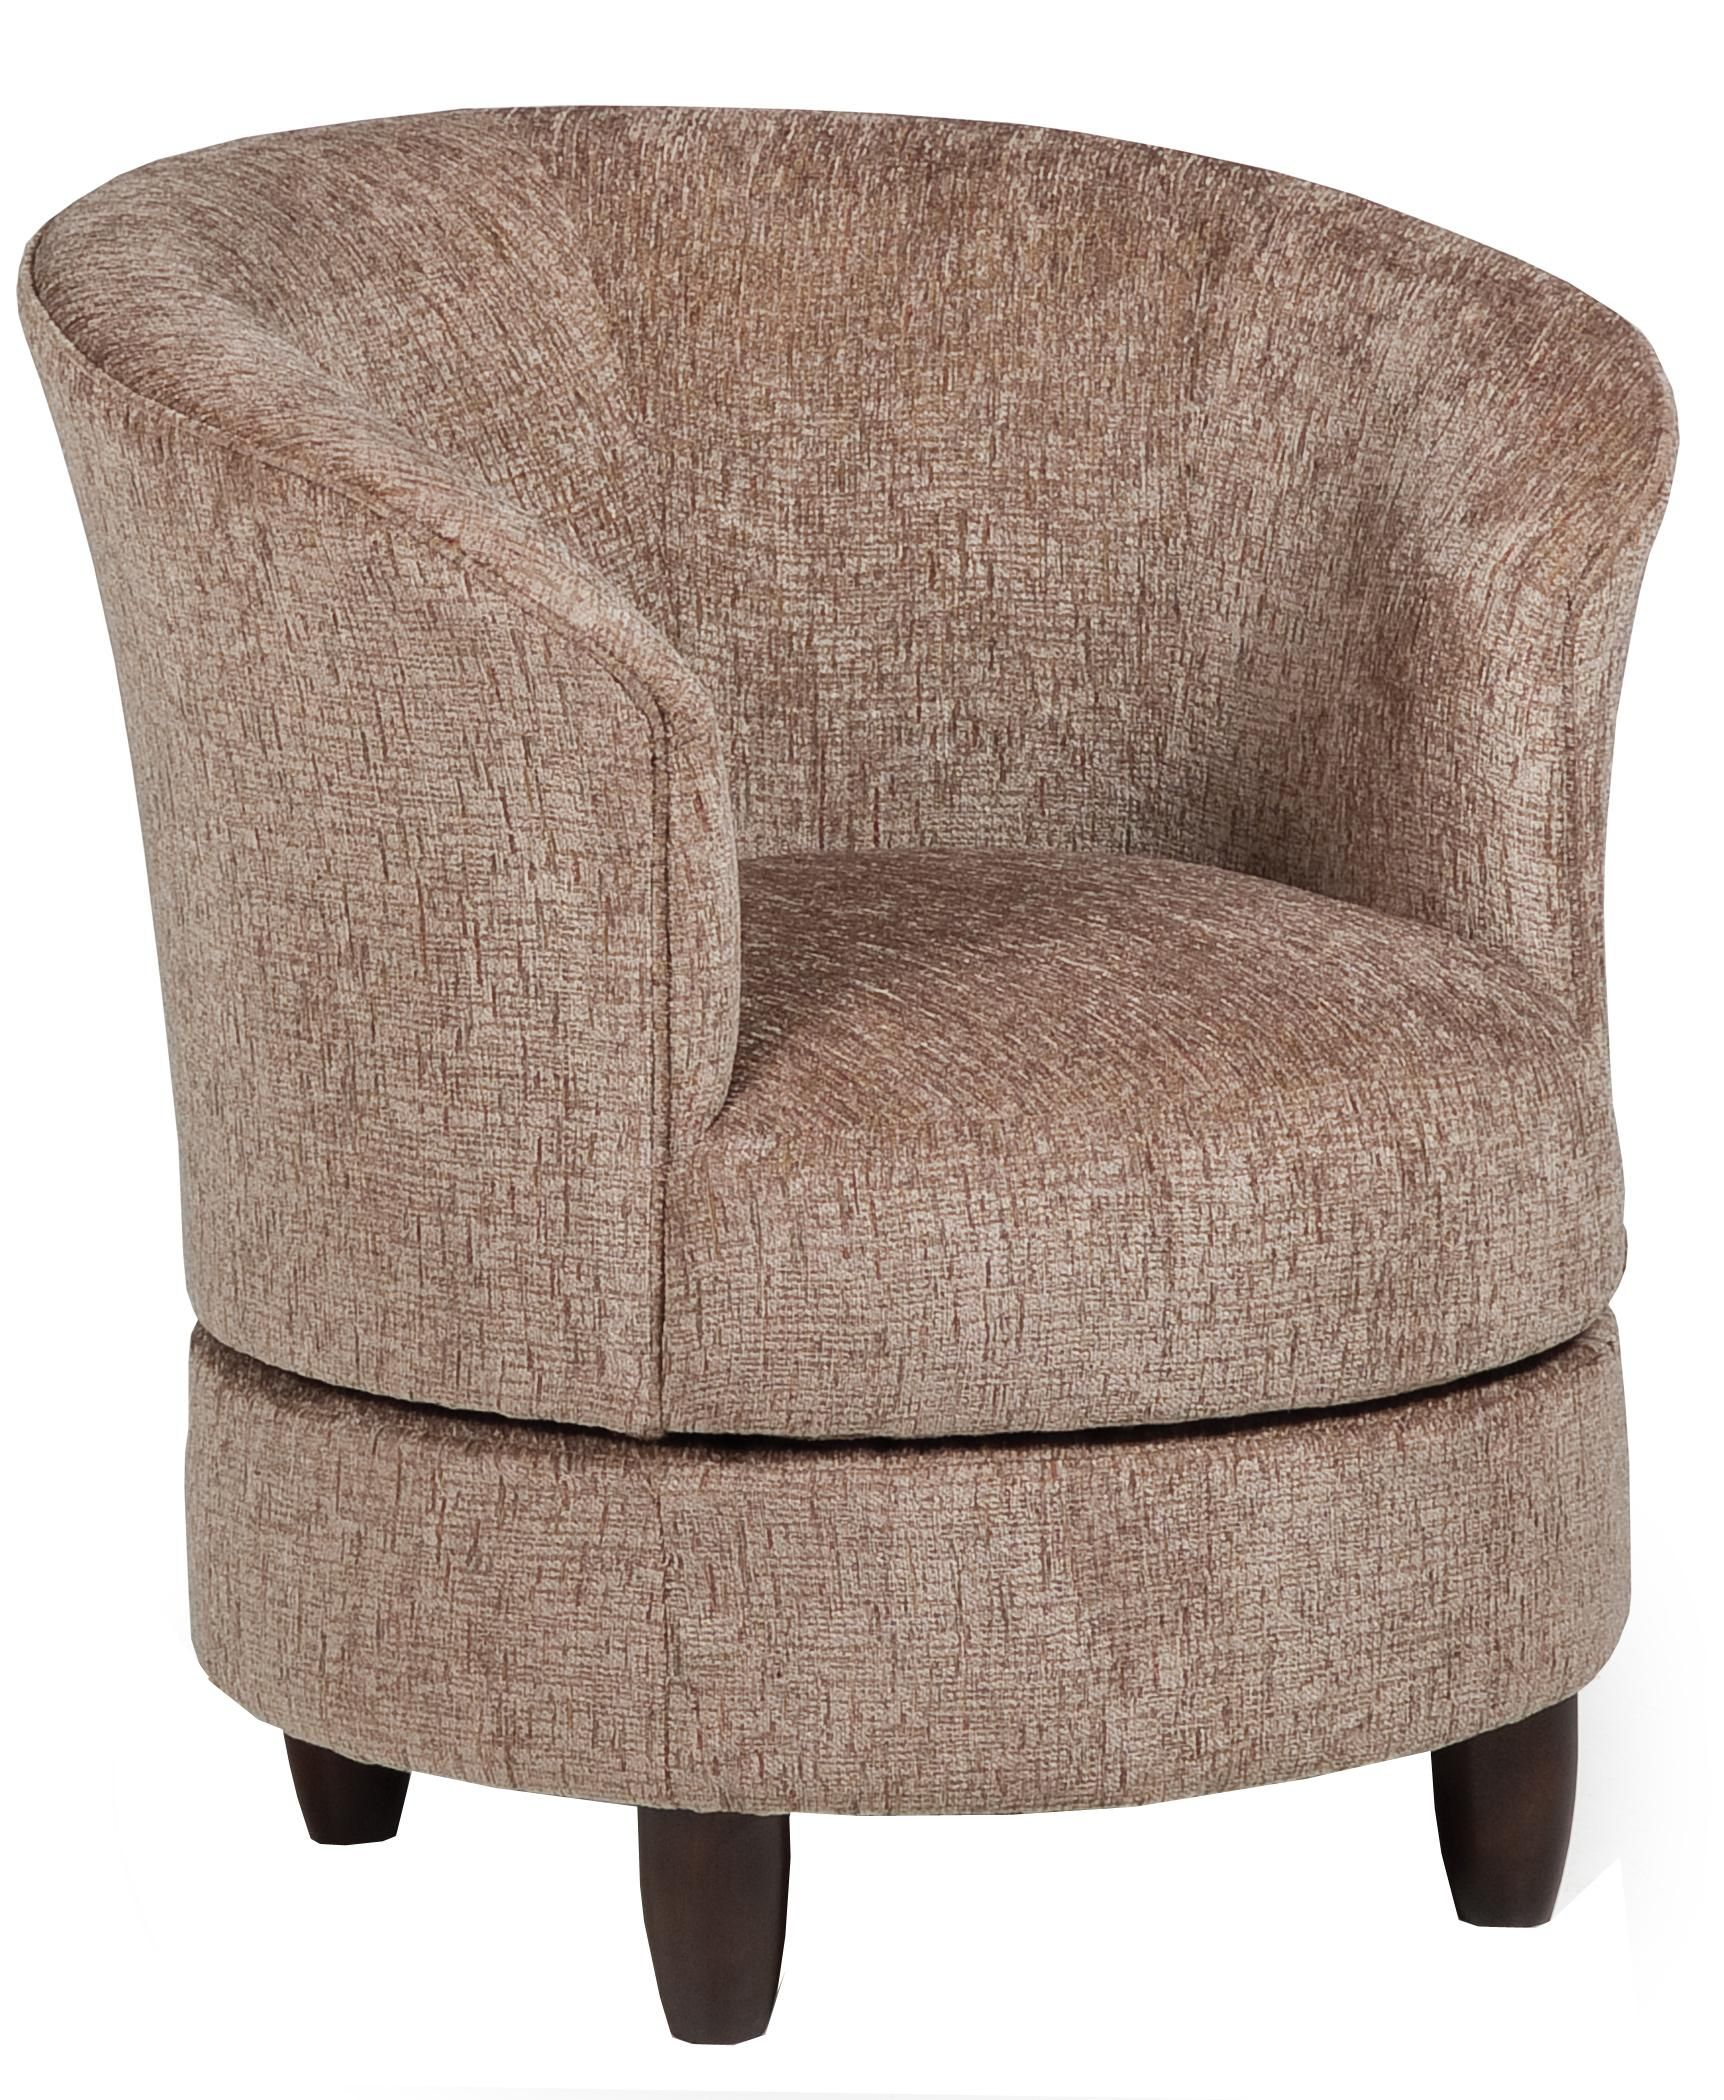 Accent Chairs Swivel Barrel Chairbest Home Furnishings | Living Within Harbor Grey Swivel Accent Chairs (Image 2 of 20)